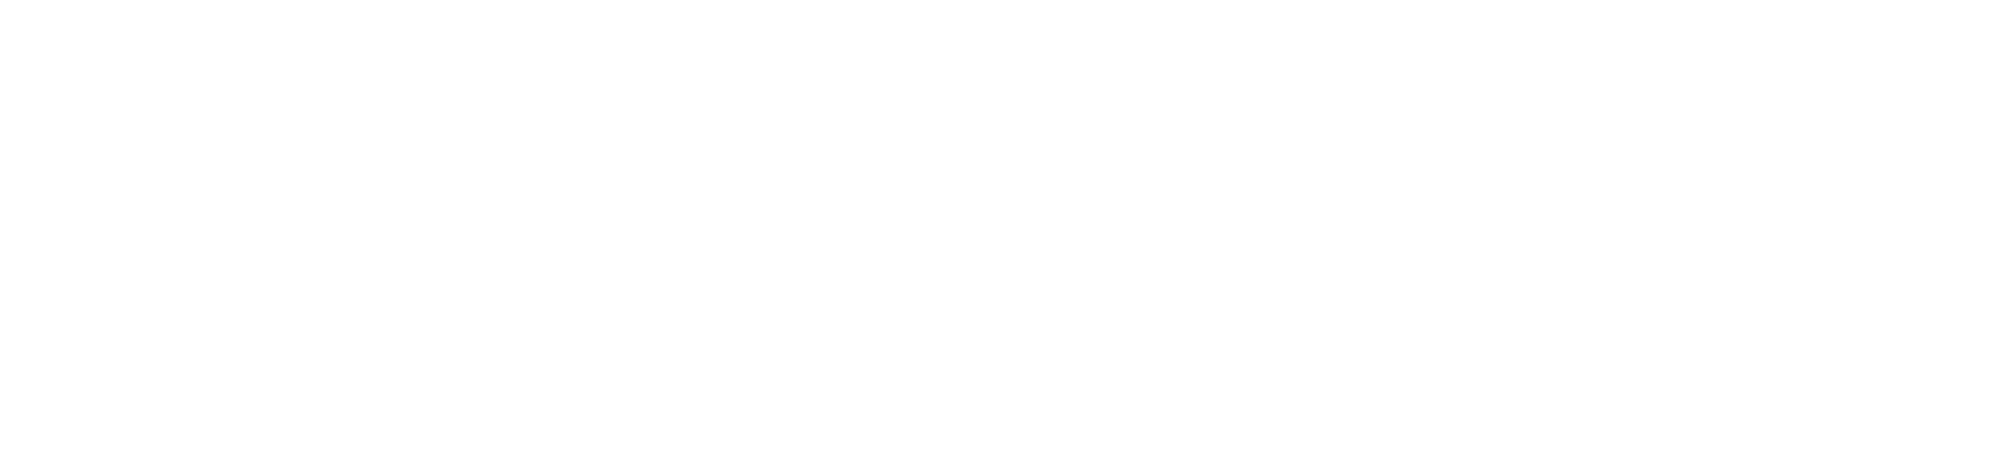 Blood Bank of Alaska - Helping Alaska patients in need